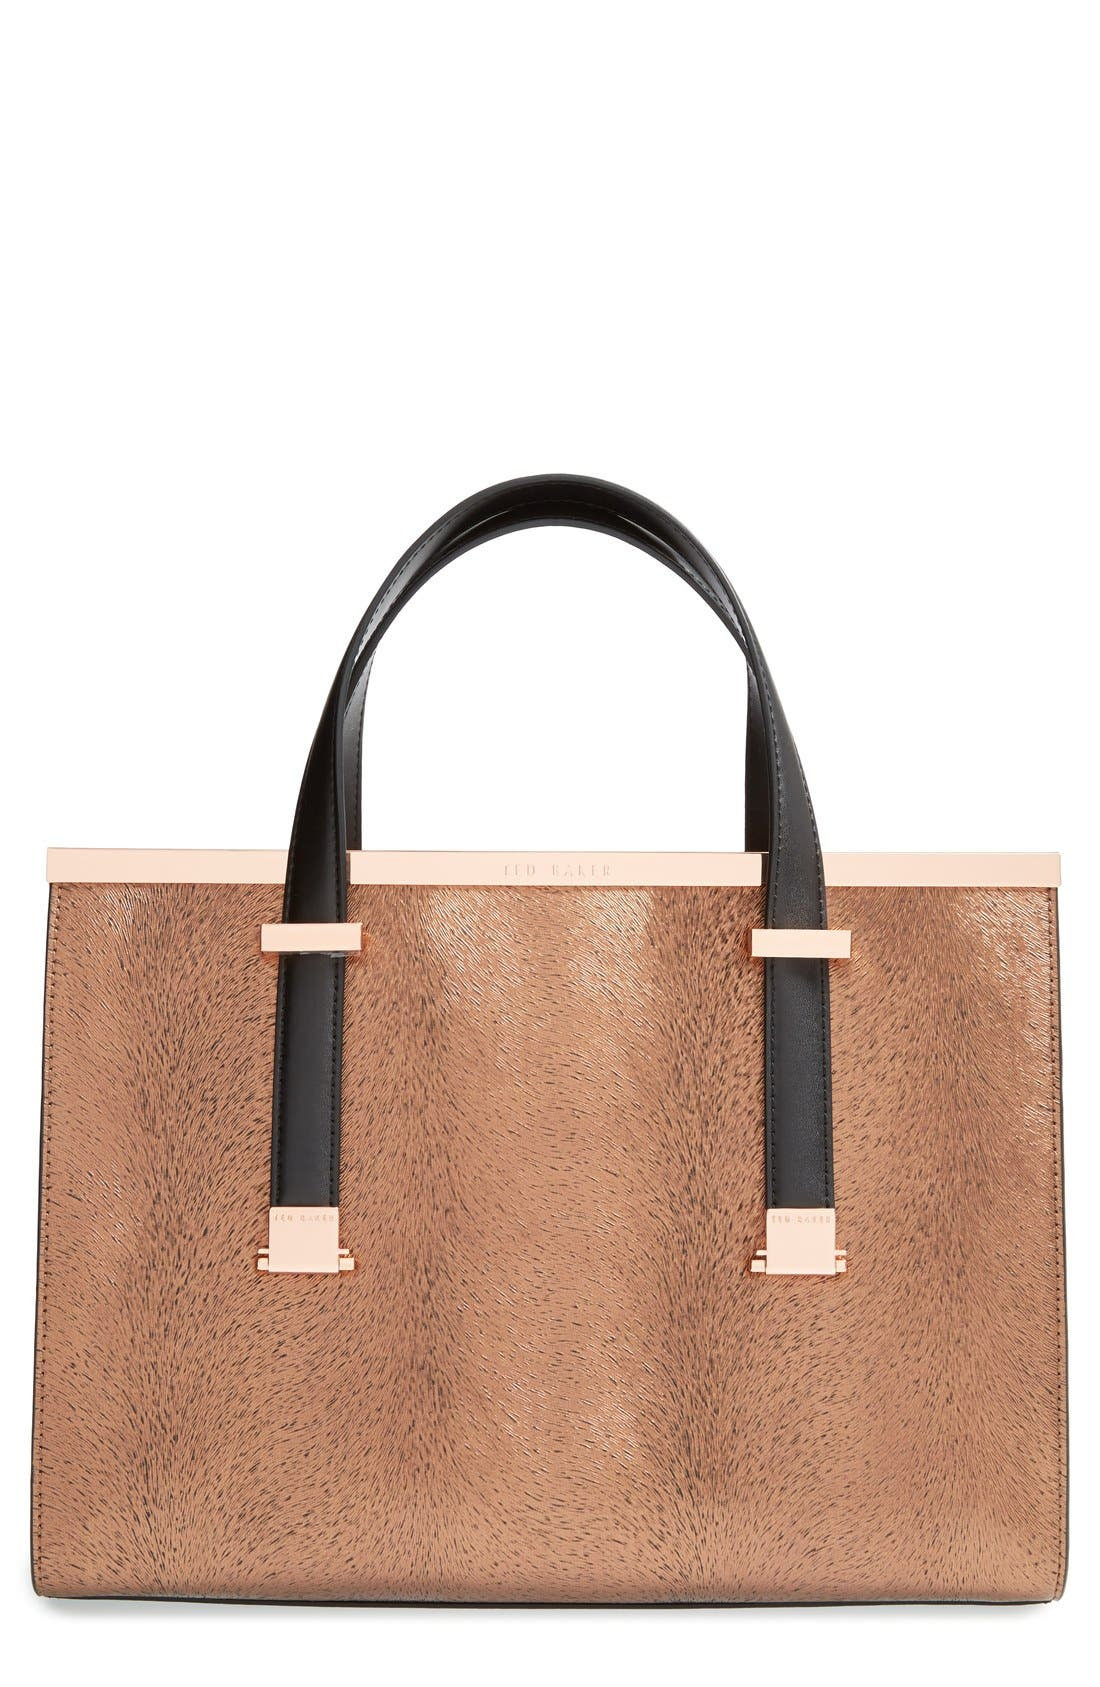 Main Image - Ted Baker London 'Marrpel' Textured Metal Tote